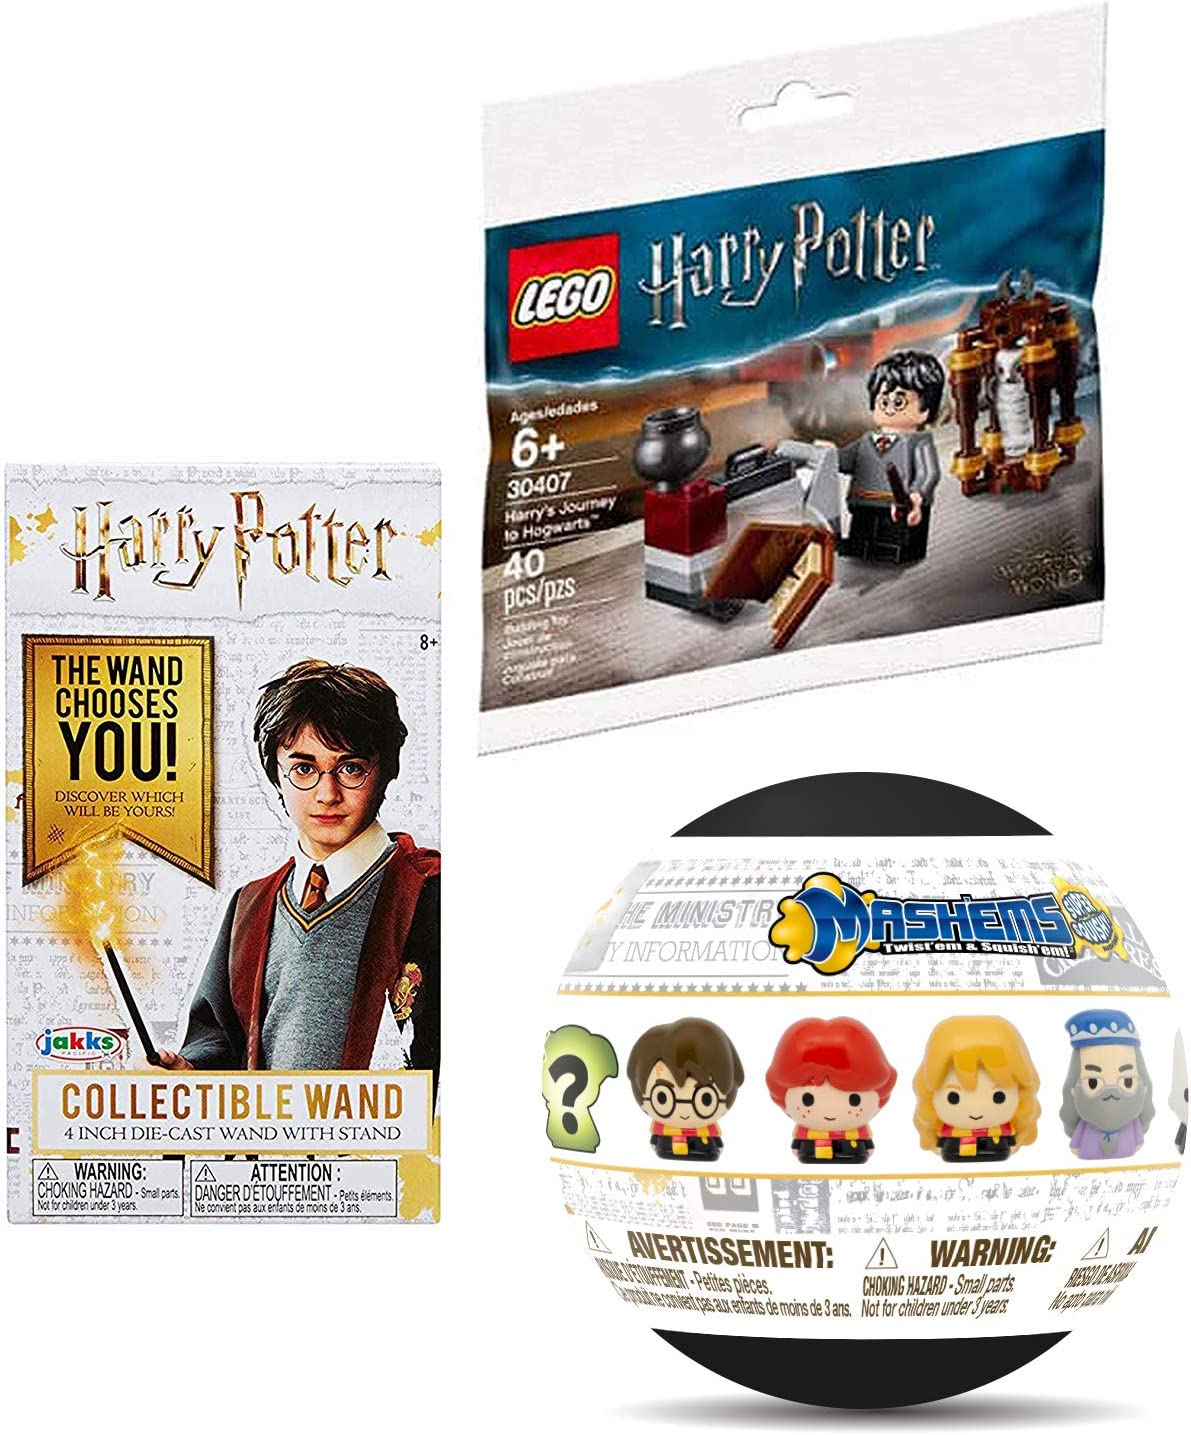 LEGO Mini HP Figure Micro Harry Potter Set Character Journey to Hogwarts Bundled with Wizard Collectibles Die-Cast Wizard Wand & Blind Capsule Soft Figure 3 Items